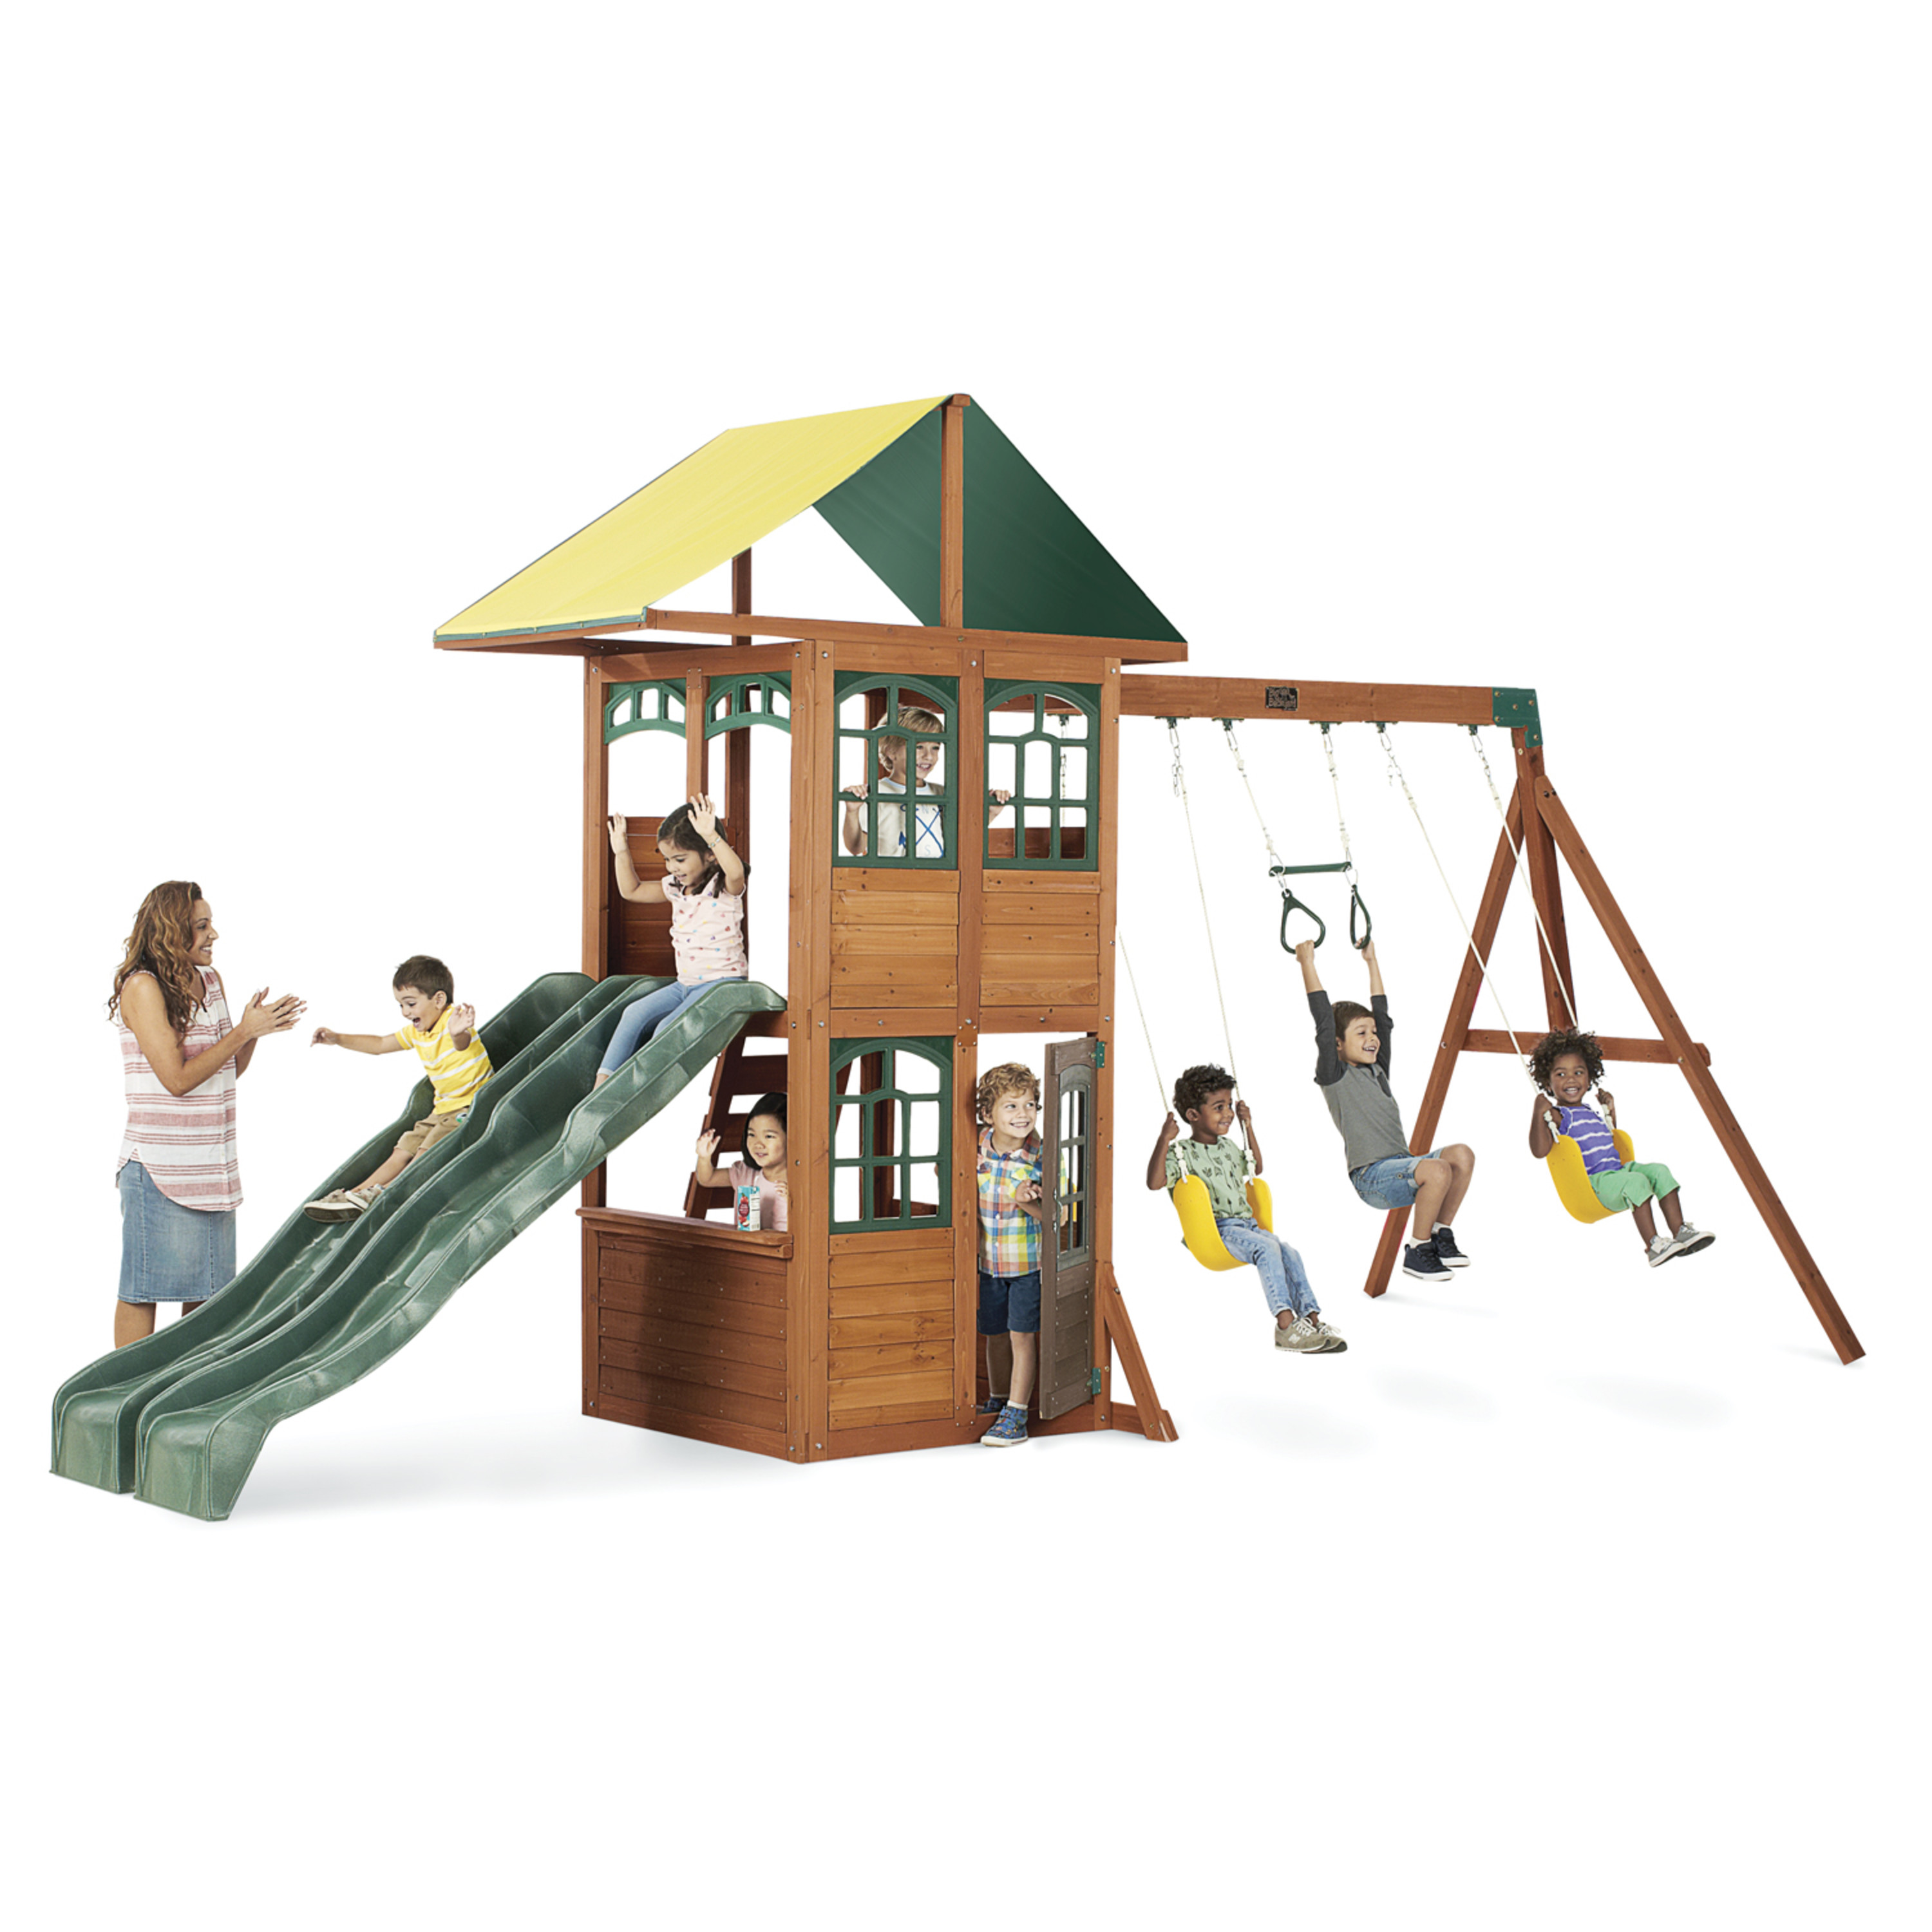 Treasure Cove Swing Set